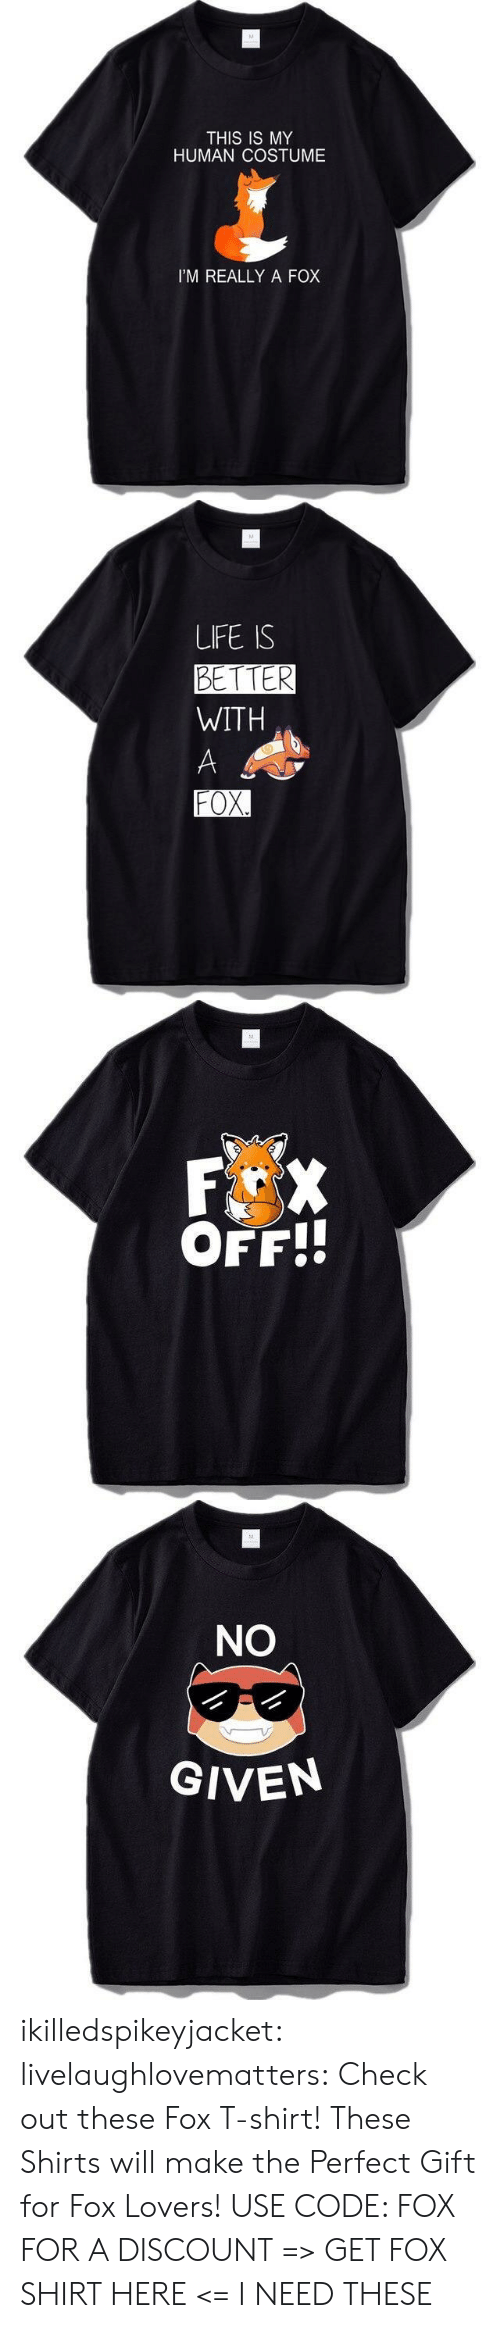 Shirts: M  THIS IS MY  HUMAN COSTUME  I'M REALLY A FOX   M  LIFE IS  BETTER  WITH  A  FOX.   M  F X  OFF!!   M  NO  GIVEN ikilledspikeyjacket:  livelaughlovematters:  Check out these Fox T-shirt! These Shirts will make the Perfect Gift for Fox Lovers! USE CODE: FOX FOR A DISCOUNT => GET FOX SHIRT HERE <=  I NEED THESE